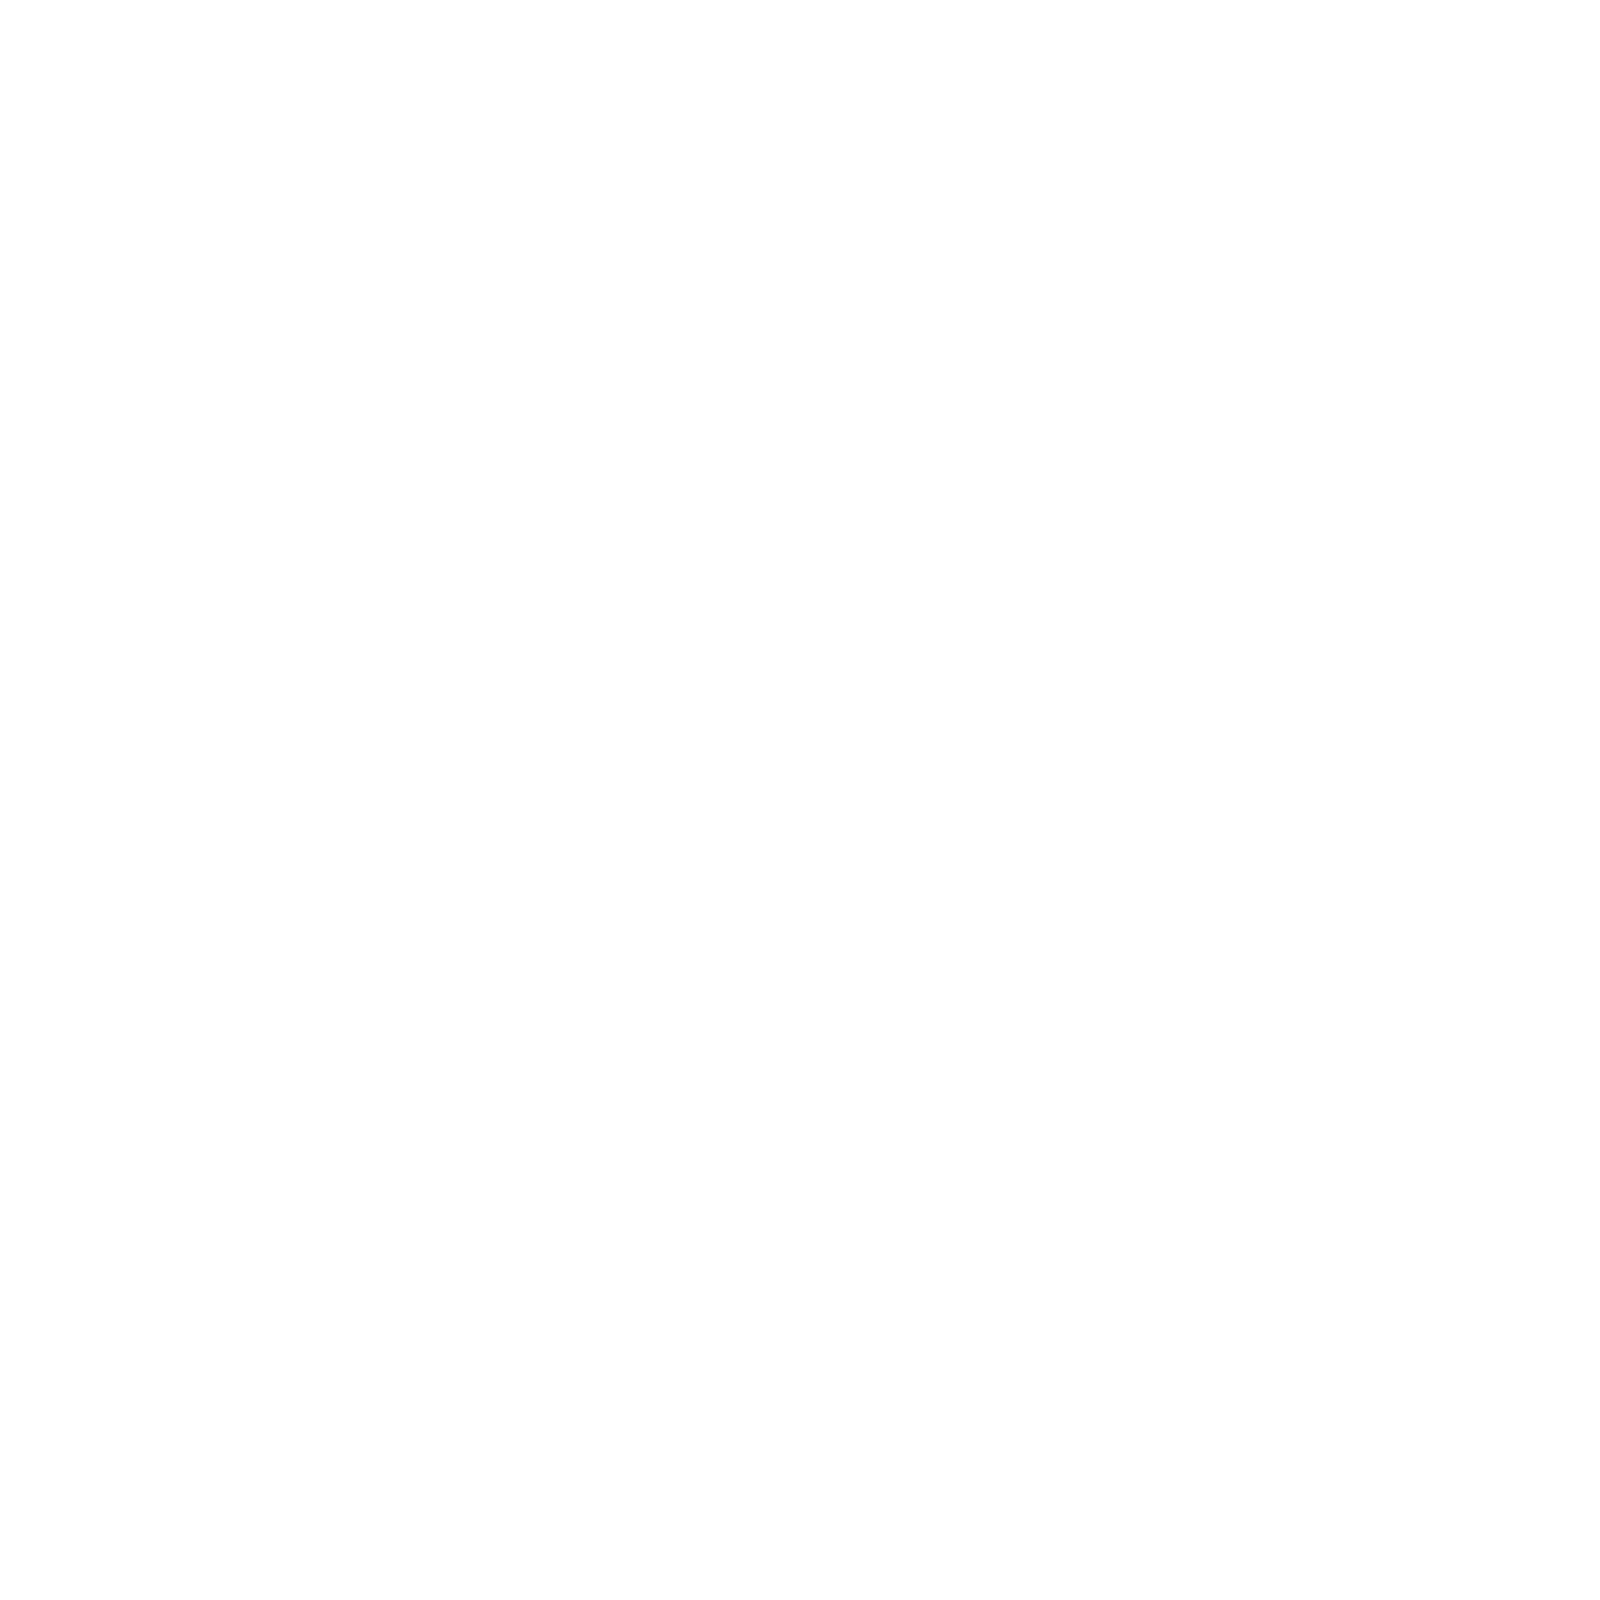 experience-guildford-project-logo